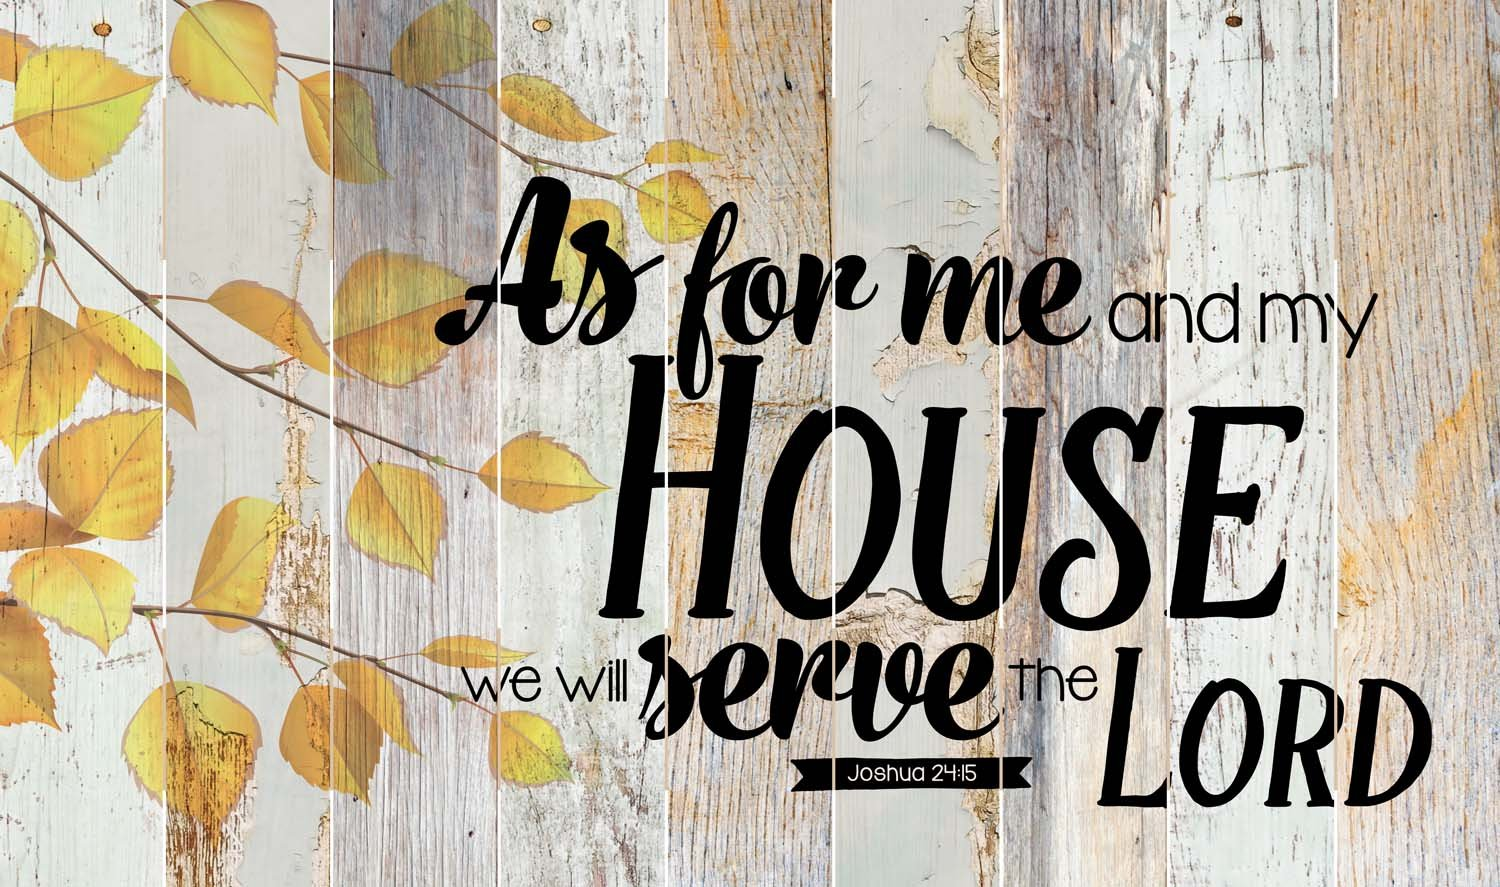 My House Will Serve the Lord Autumn Leaves 28 x 47 Wood Large Barn Board Wall Art Sign Plaque by P Graham Dunn